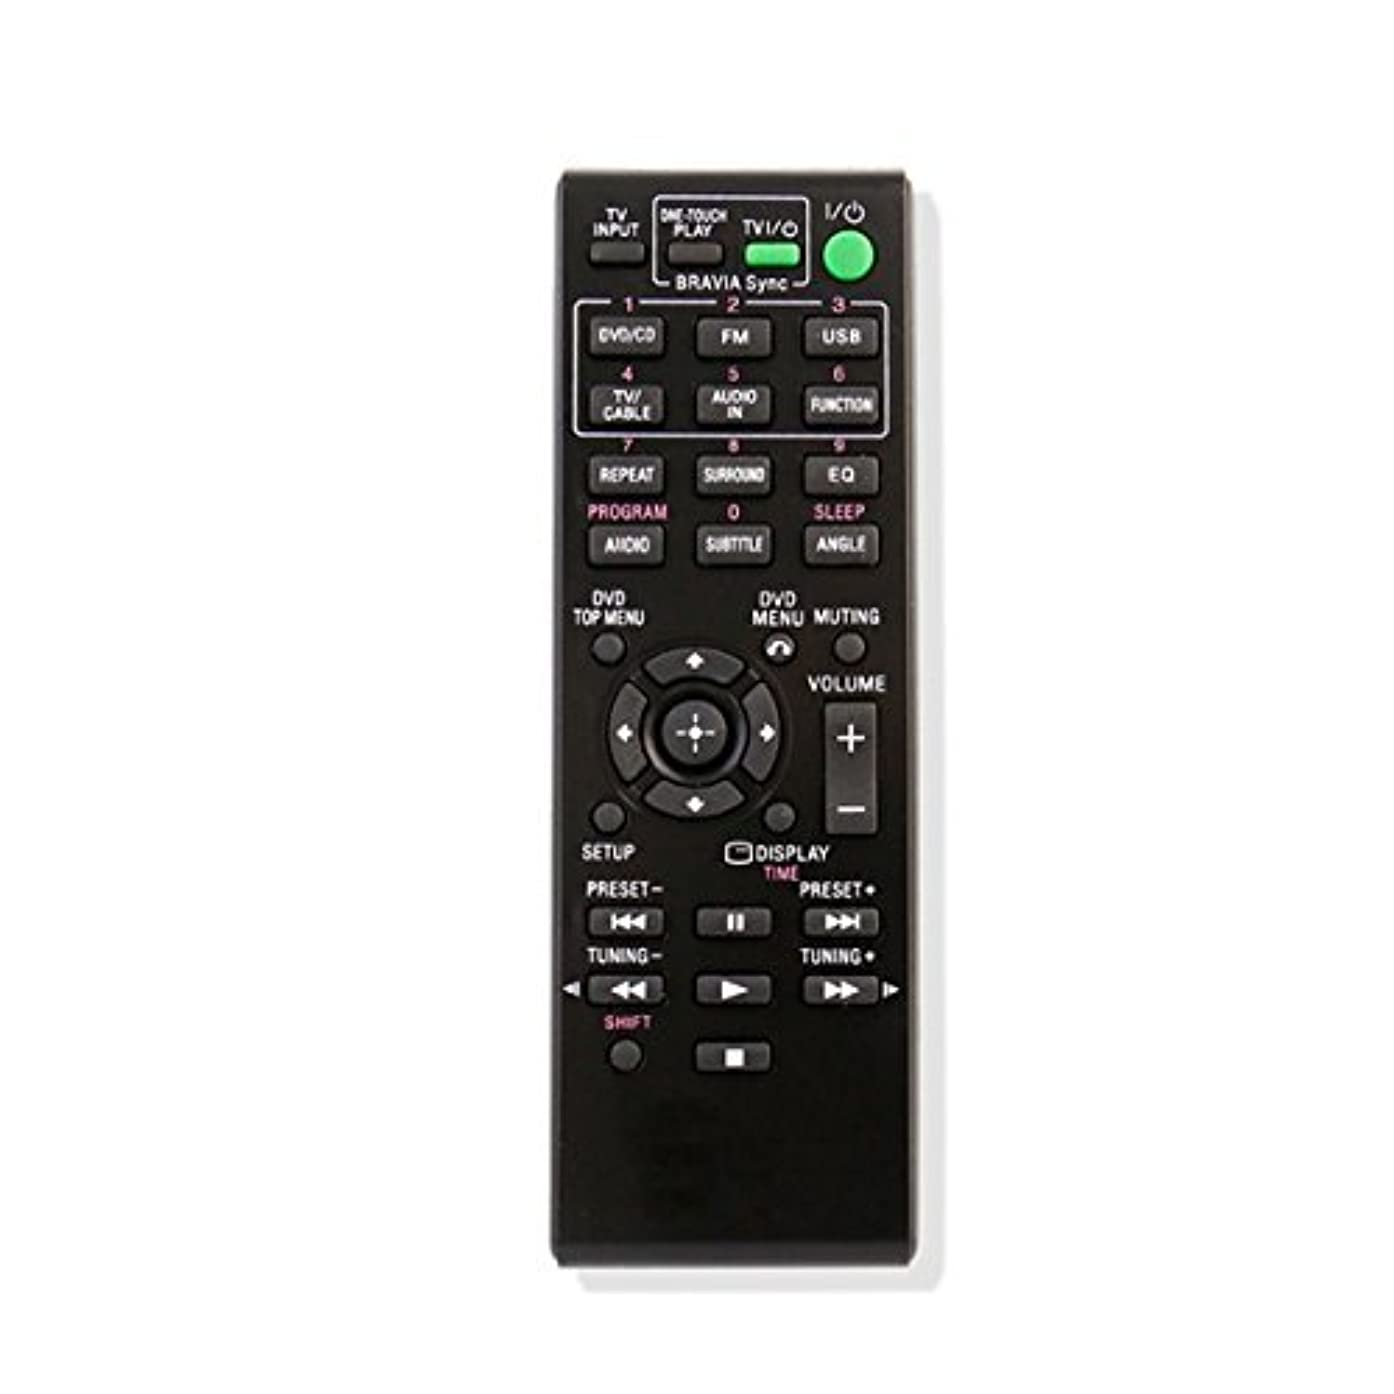 New Replacement Remote Control Fit for RM-ADU138 for Sony DAV-TZ140 DAVTZ140 HBD-TZ140 HBD-TZ140 DAV-TZ145 DAV-TZ150 HBD-TZ145 Home Theater (Certified Refurbished)